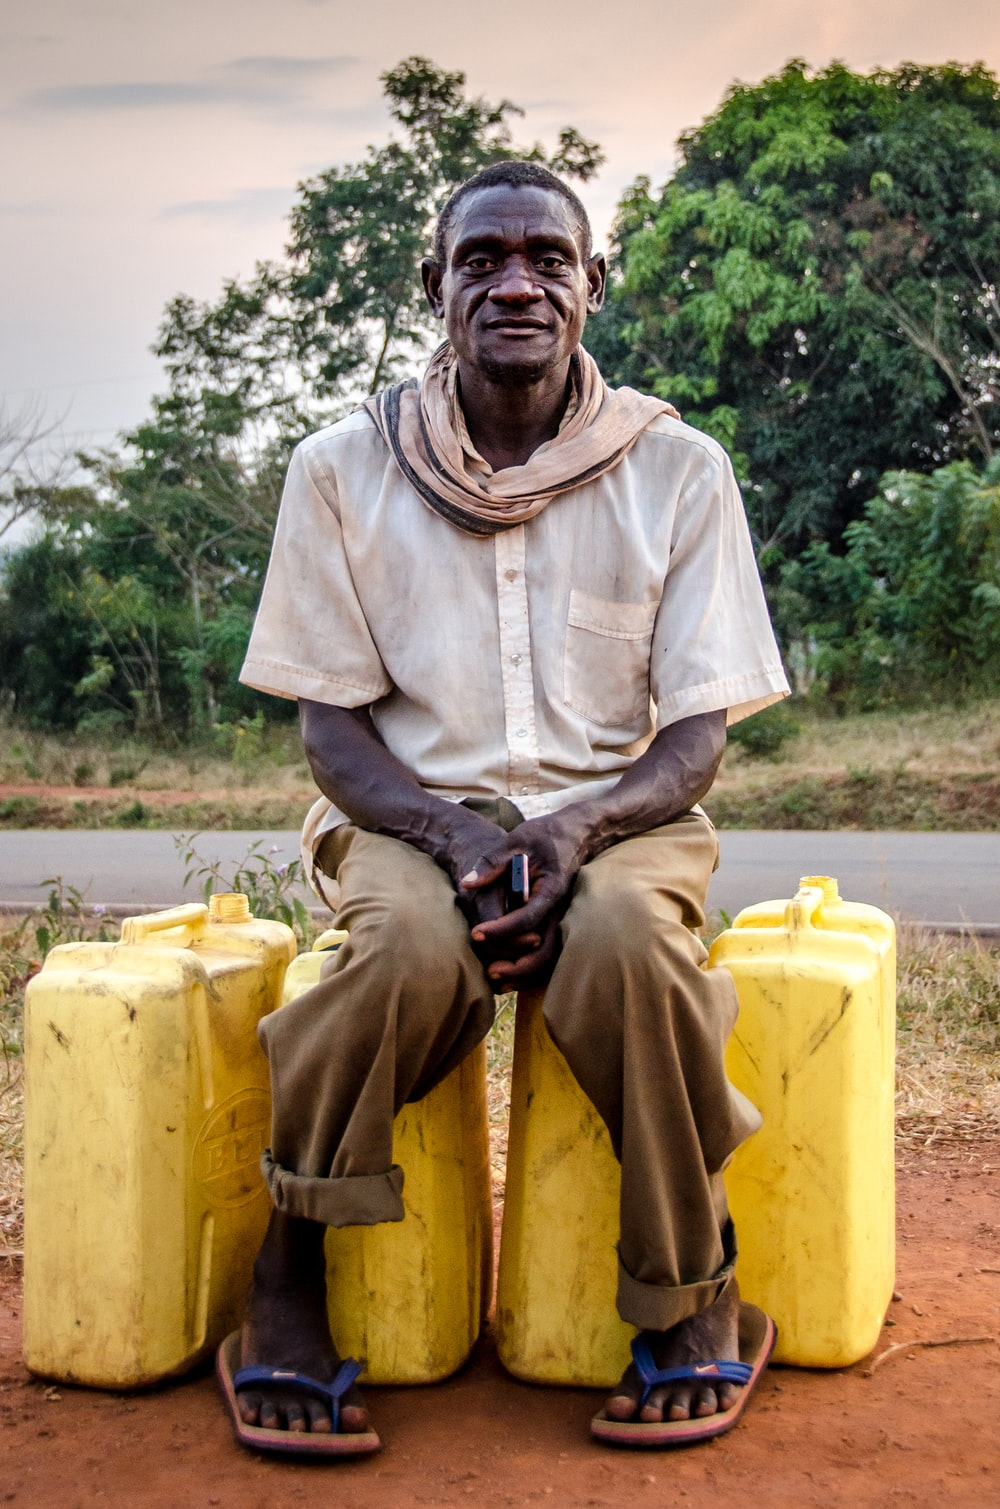 man sitting on yellow plastic containers